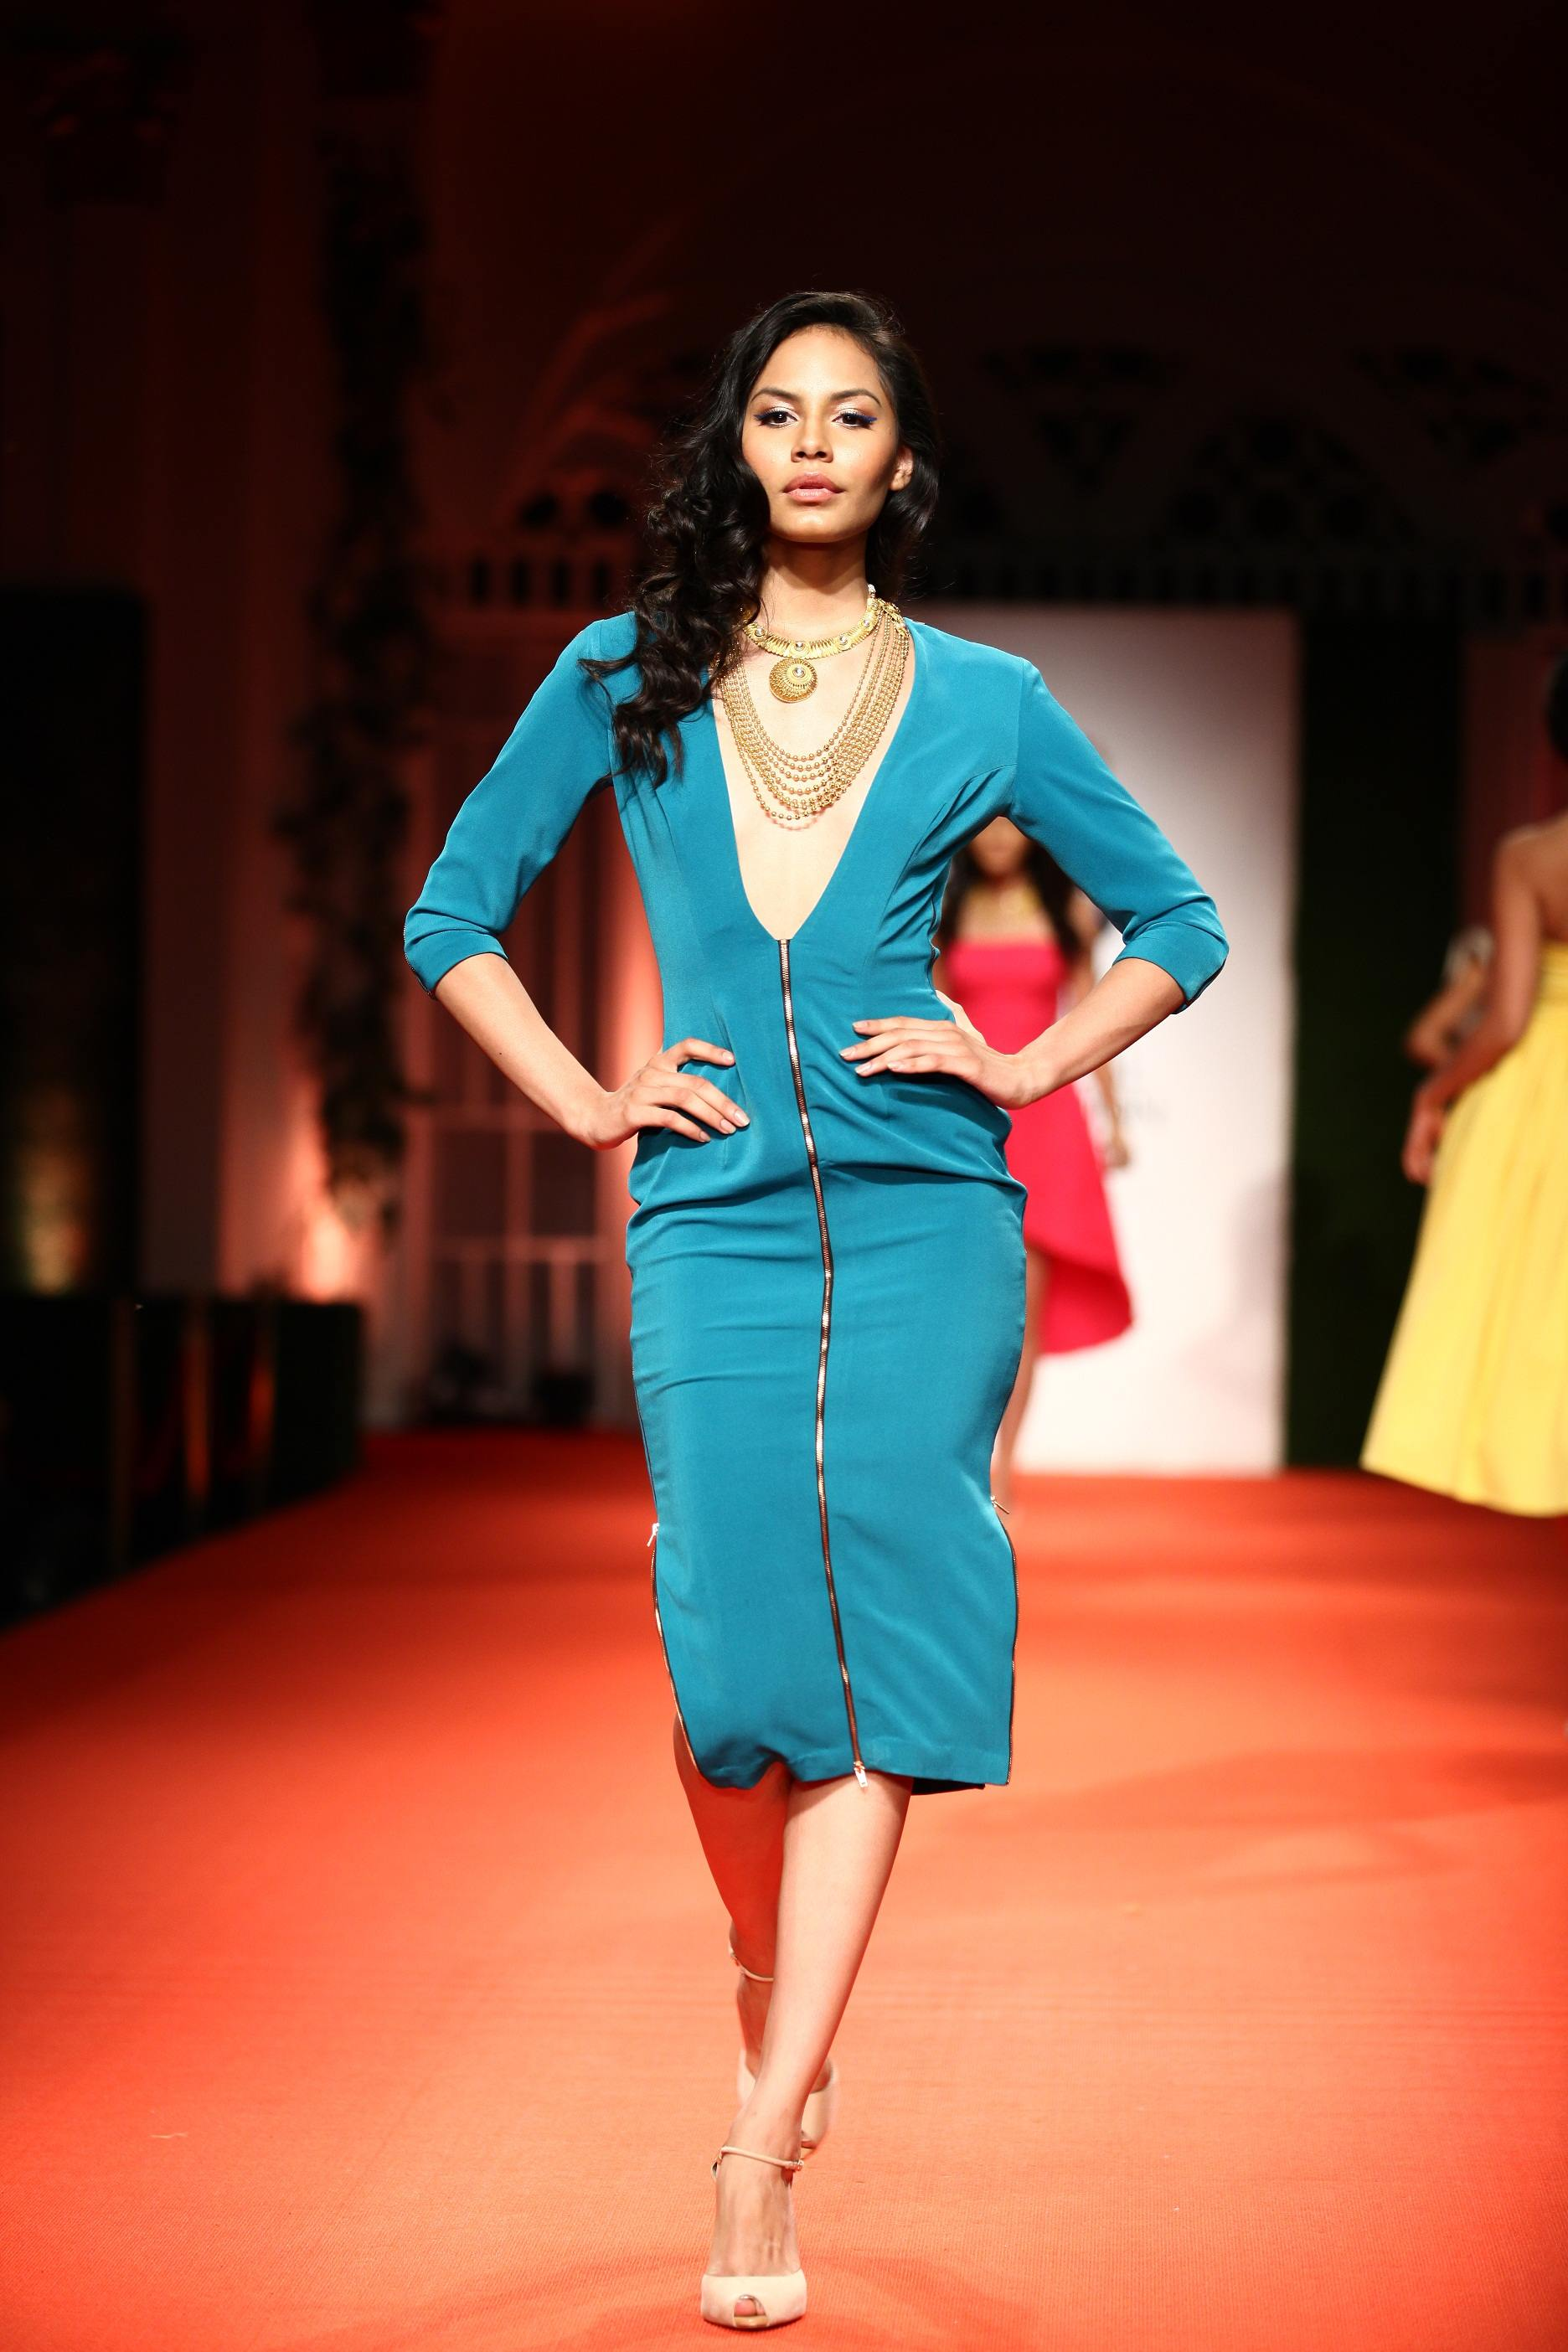 Azva Presents Gold Jewellery in its Most Elegant and Glamourous Avatar at BMW India Bridal Fashion Week 2014 in association with AZVA at DLF Emporio (4).jpg